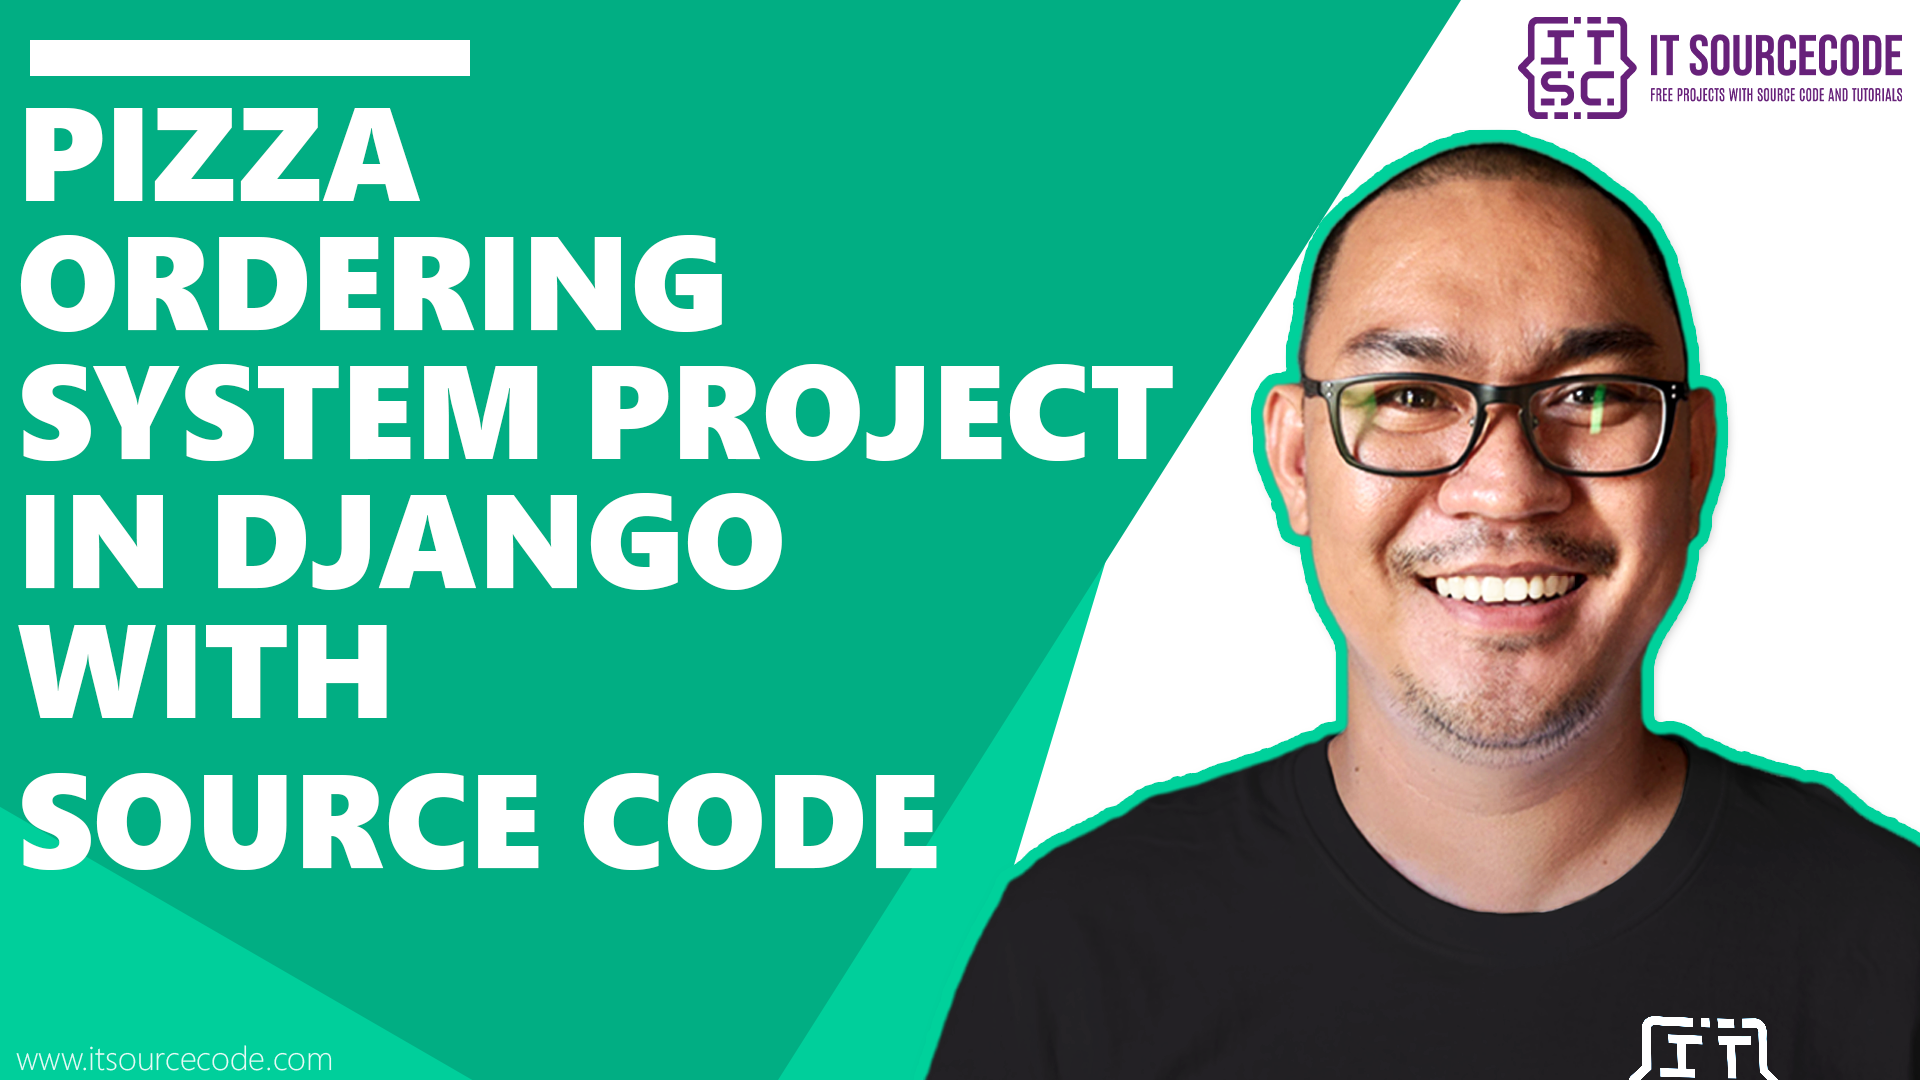 Pizza Ordering System Project in Django with Source Code